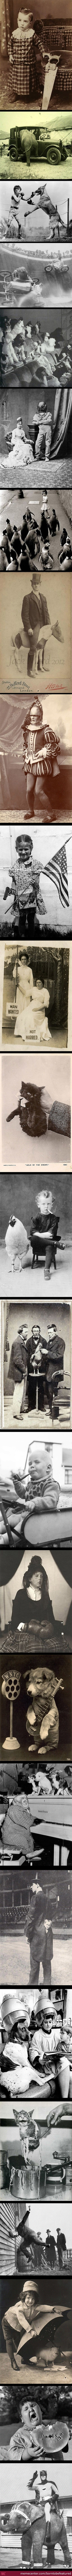 Old And Funny Black & White Photos